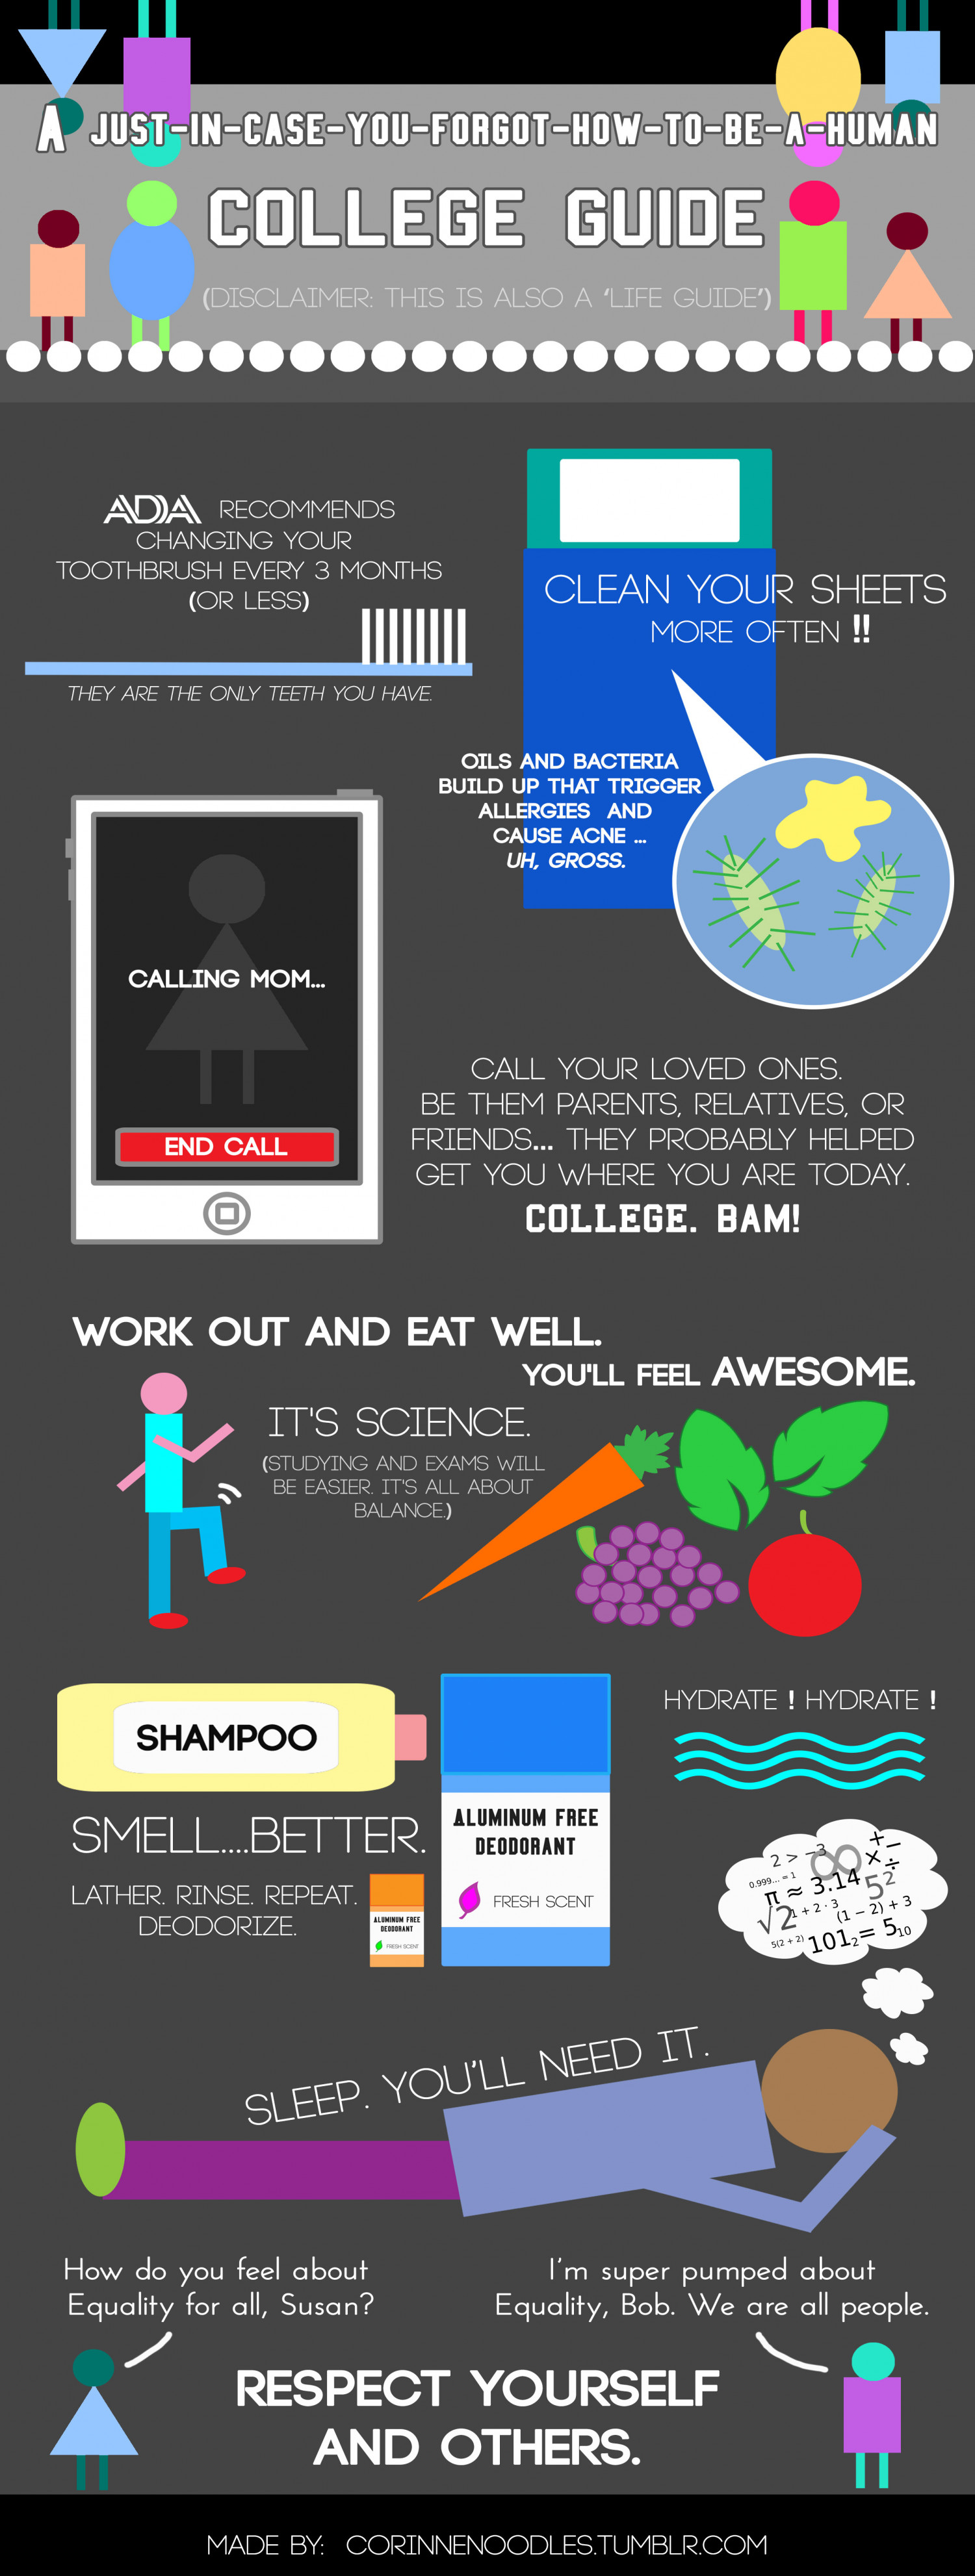 A Just-In-Case-You-Forgot-How-To-Be-A-Human College Guide Infographic